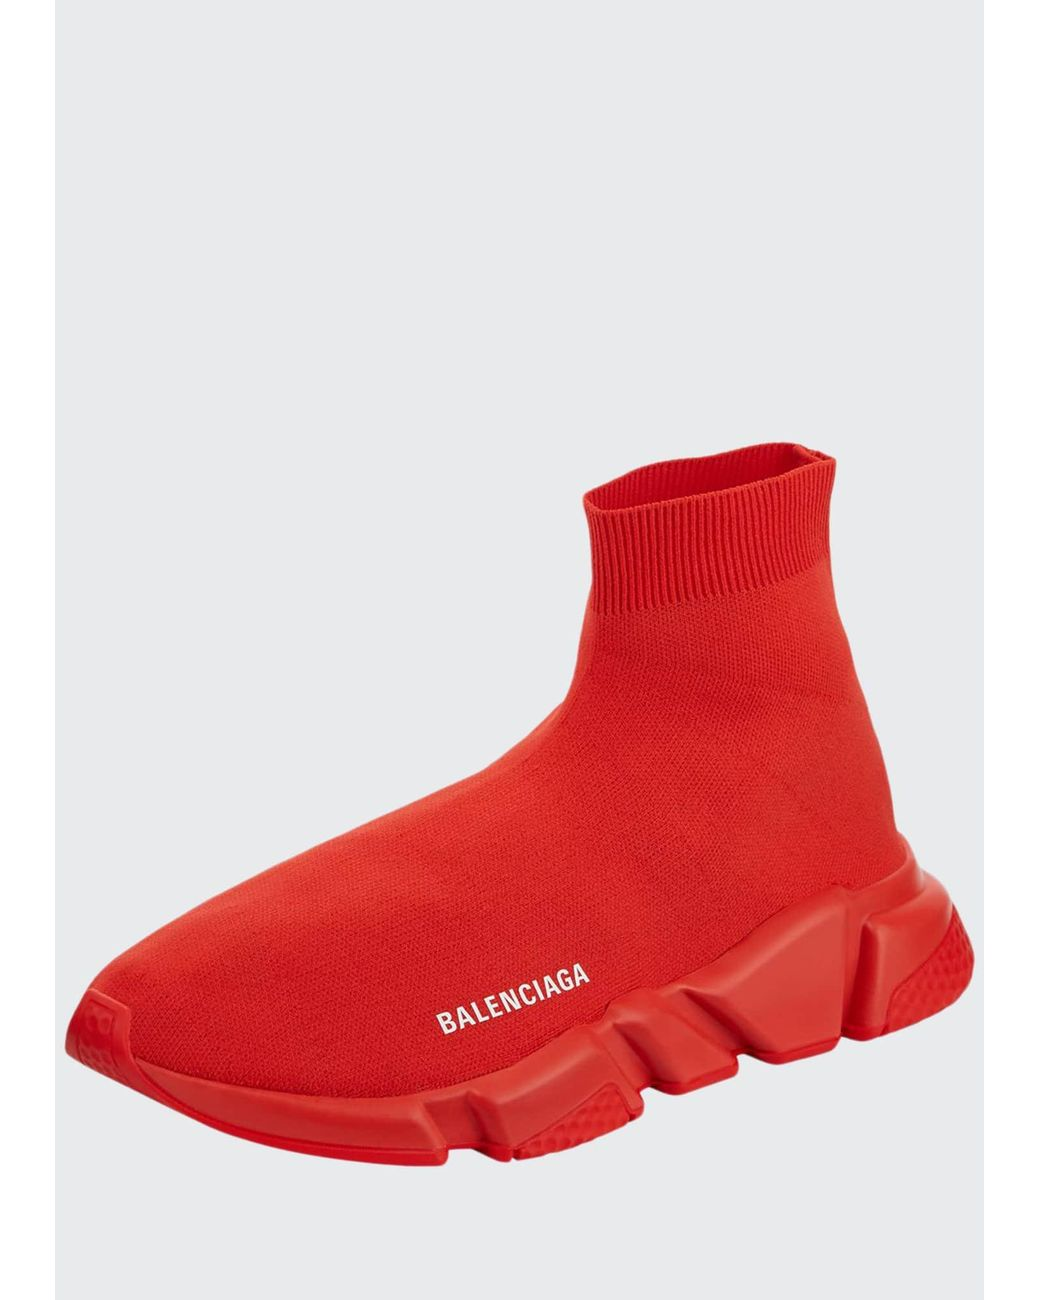 With Tonal Rubber Sole in Red for Men